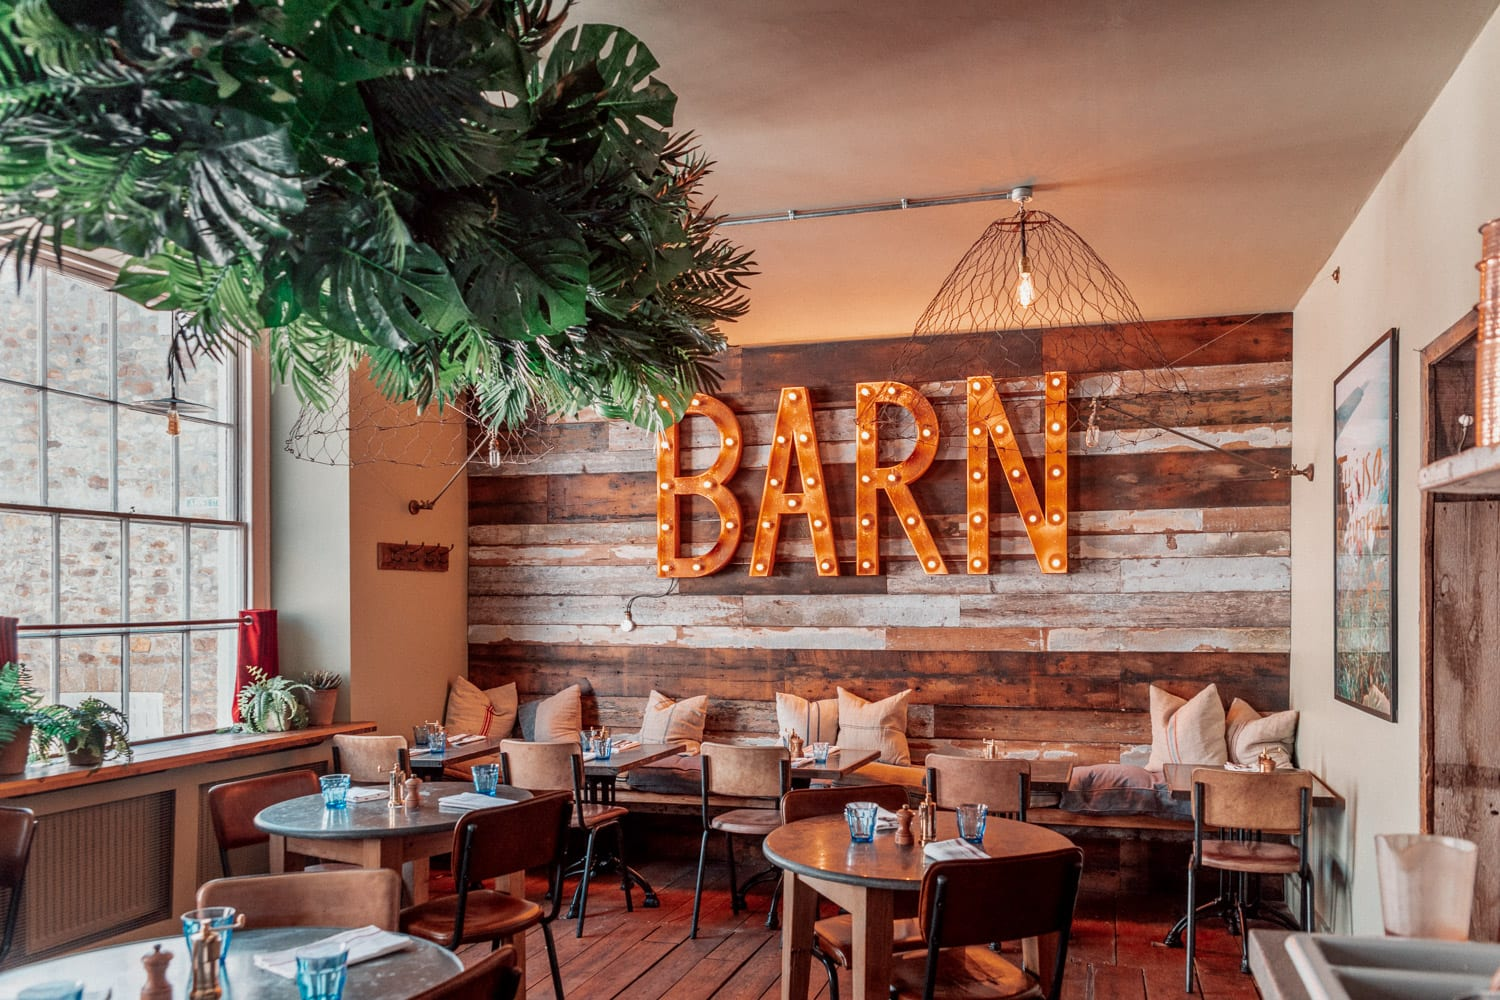 The Cornish Barn - Instagrammable Restaurant and Bar in Penzance, Cornwall, UK